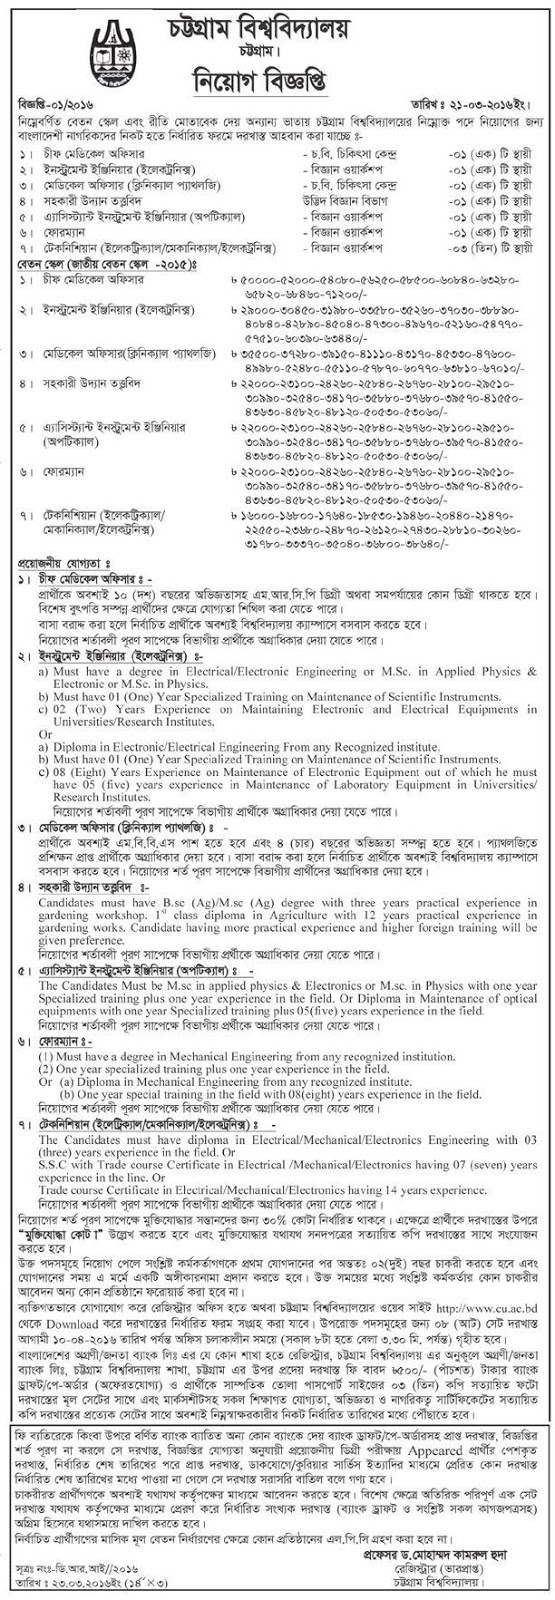 chittagong university chief medical officer instrument engineer assistant instrument engineer optical and foreman job circular 2016